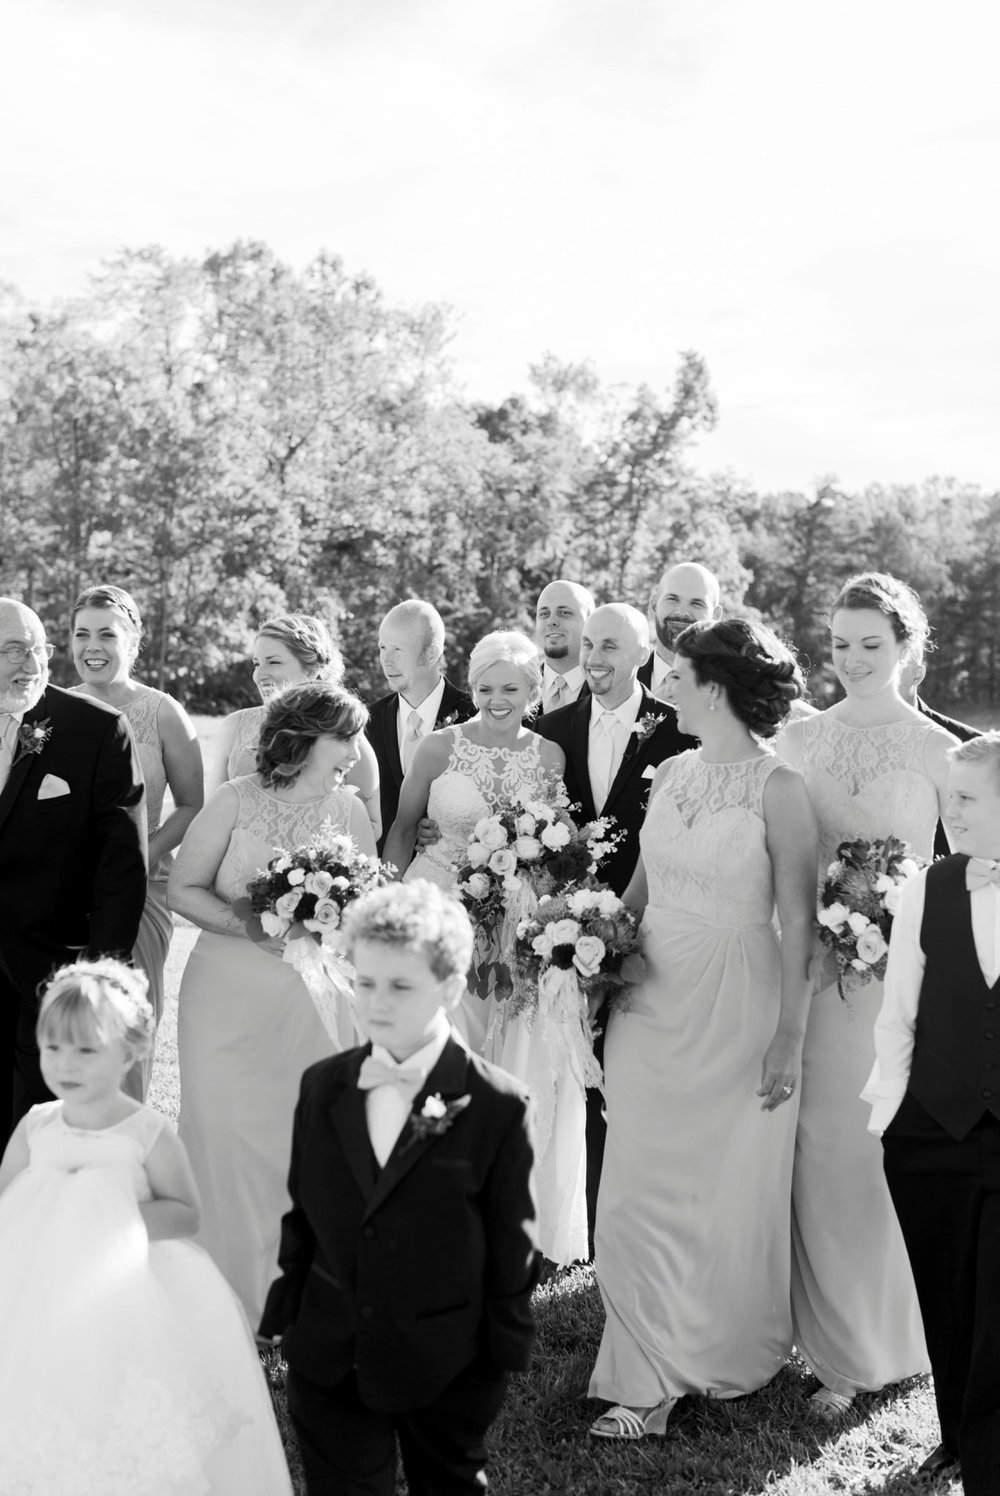 TheMillHouse_ChathamVA_WeddingPhotographer_VirginiaWeddingPhotographer_9.jpg 78.jpg